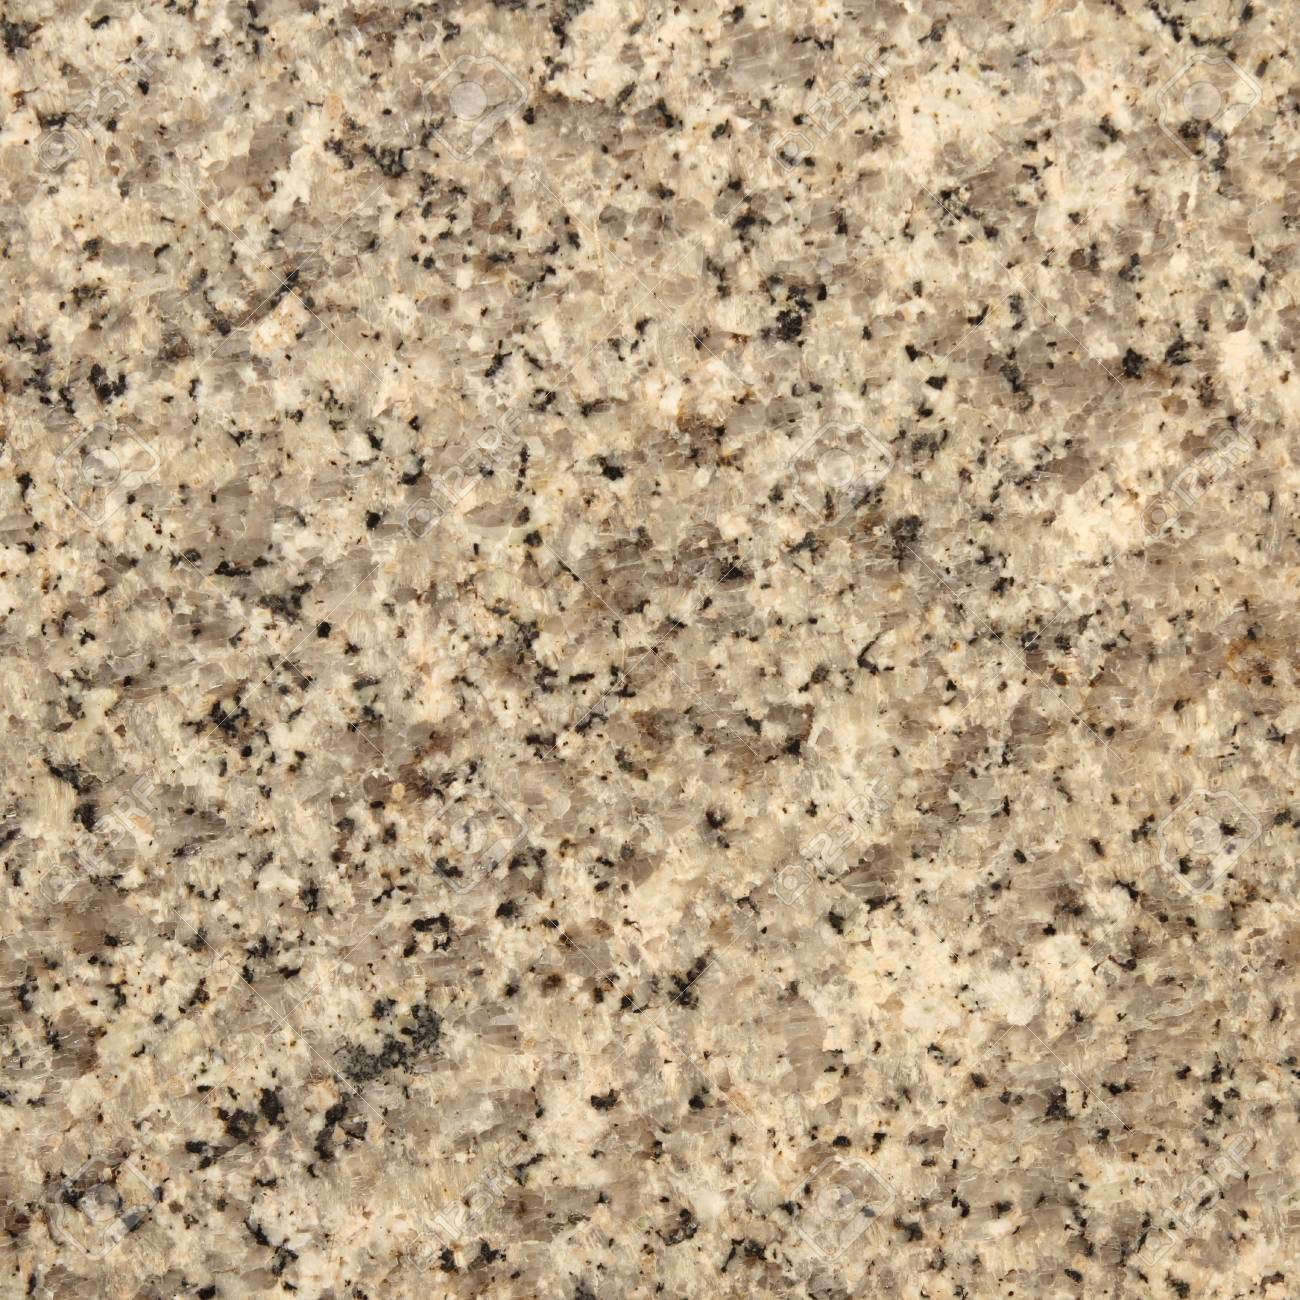 Terrazzo Floor Old Texture Or Polished Stone For Background Stock